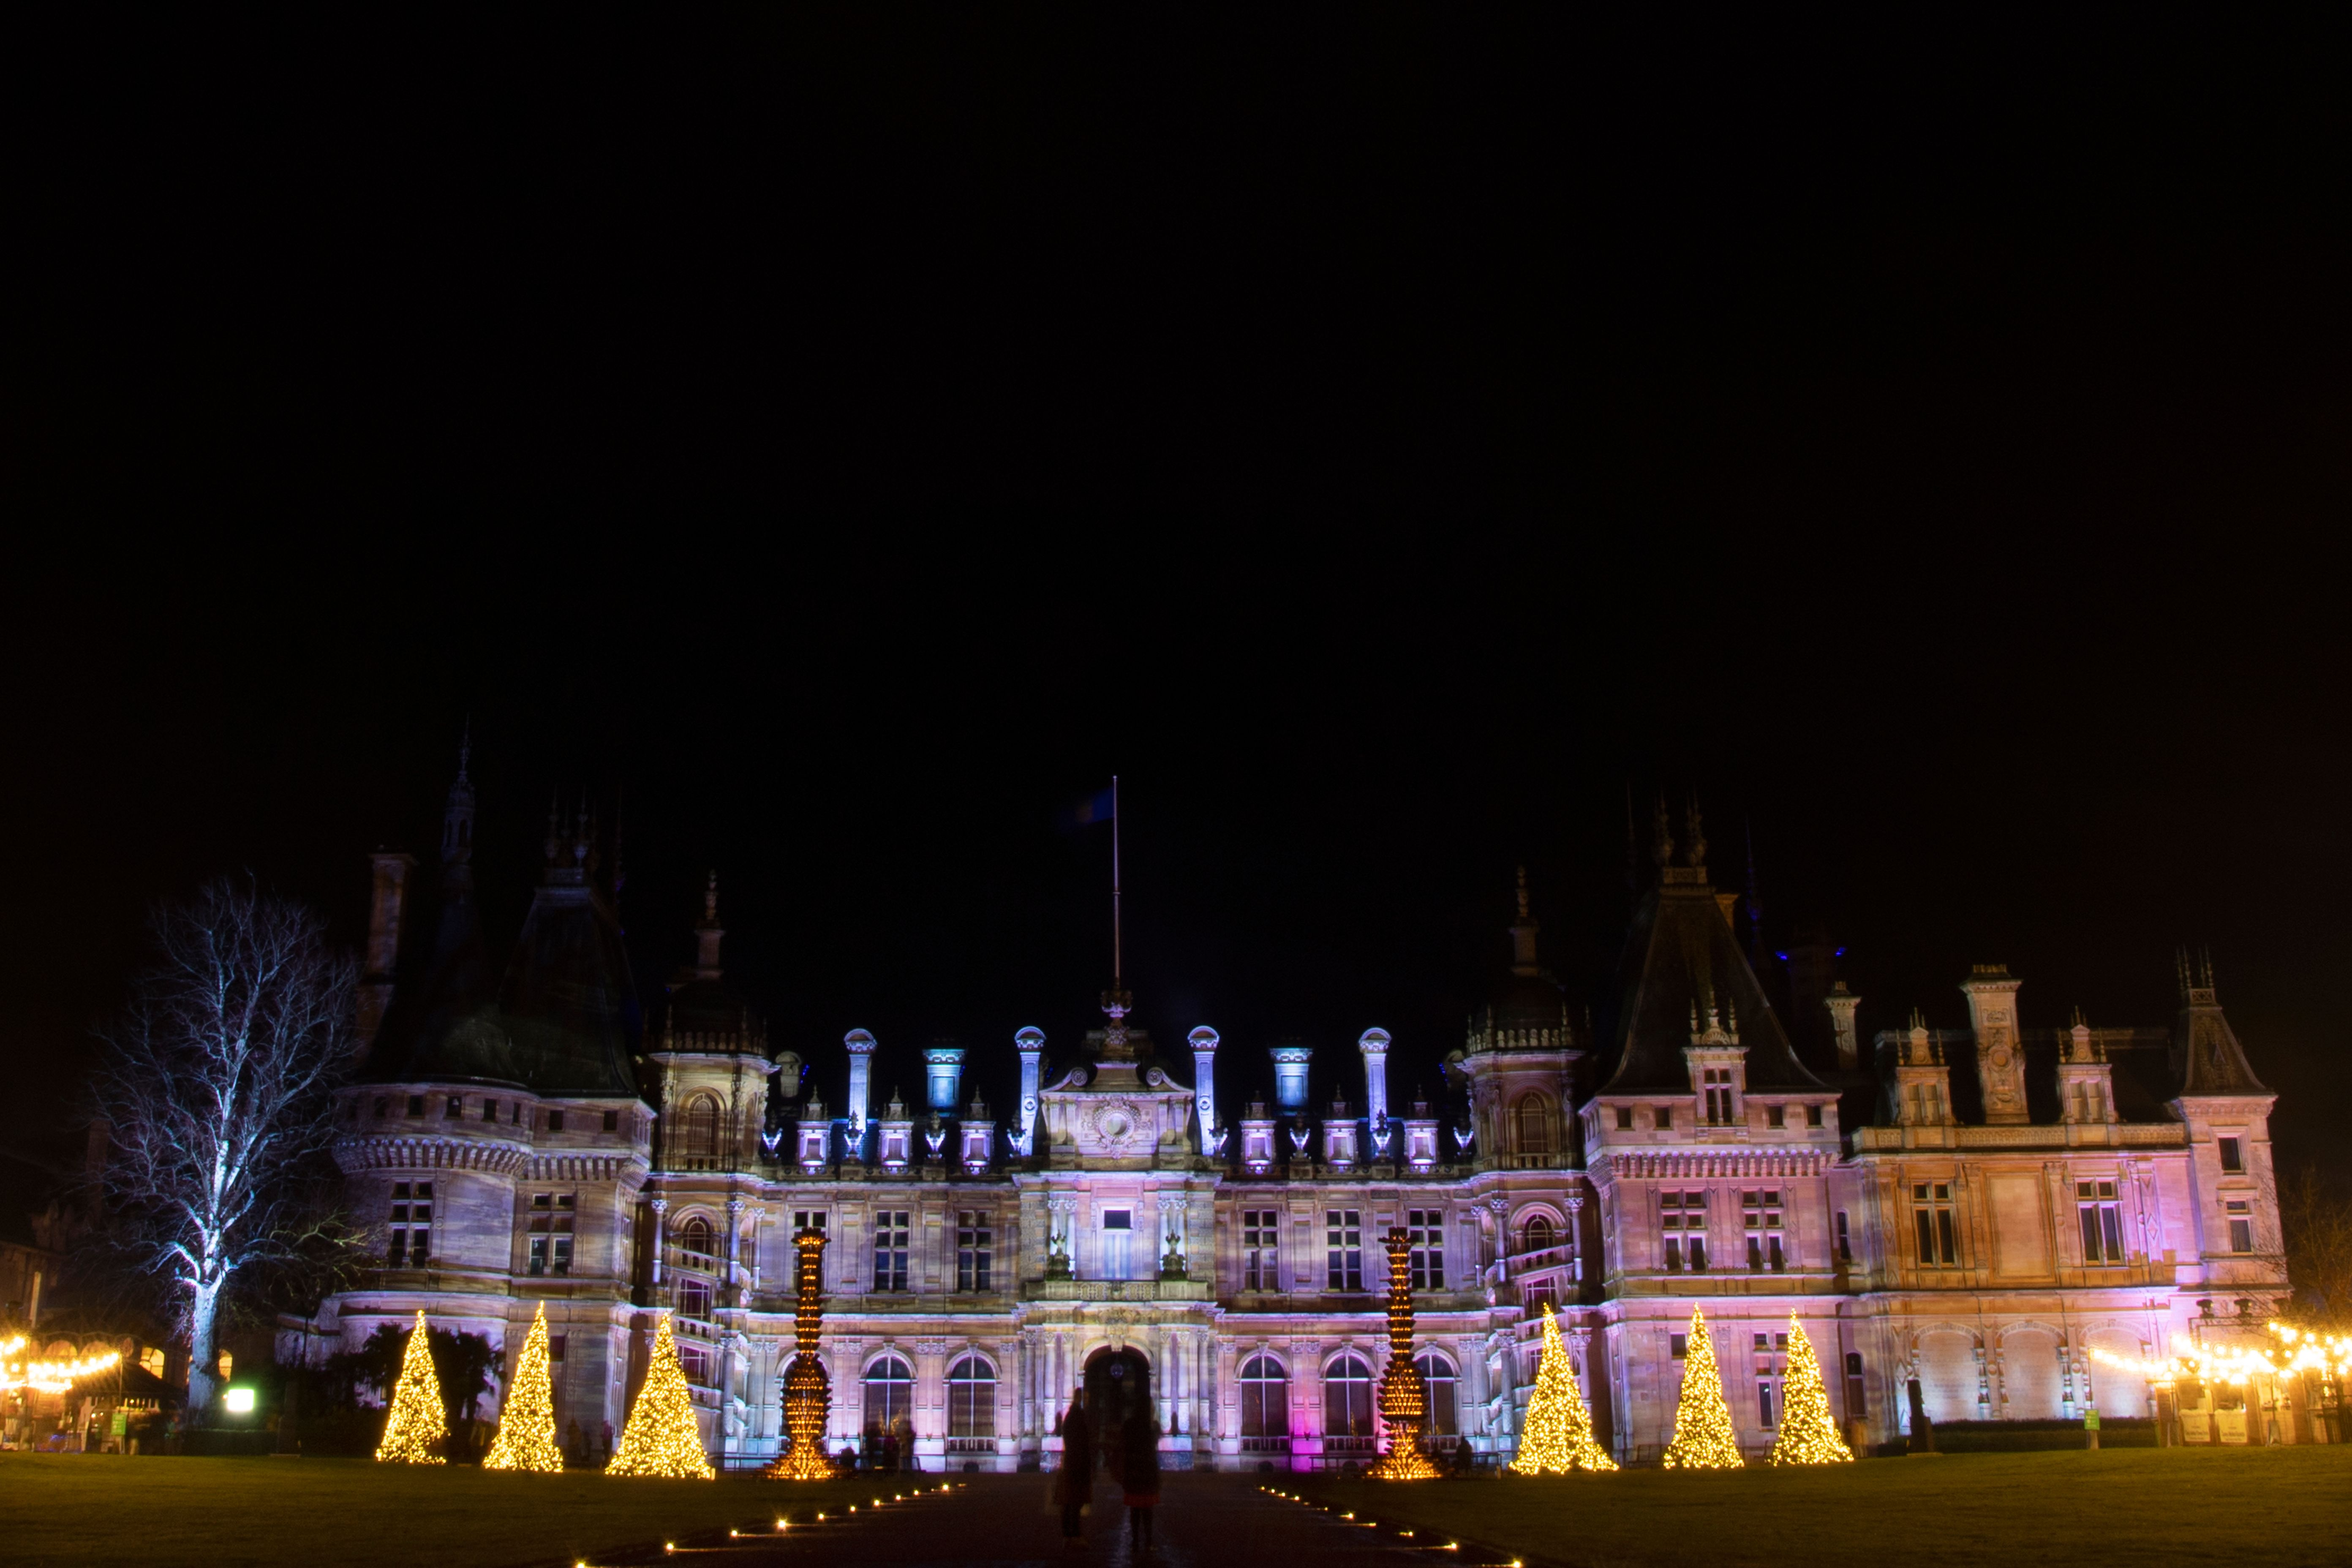 The Manor is seen illuminated at a photo call for the annual 'winter light' Christmas displays at Waddesdon Manor in Aylesbury, north west of London, on December 3, 2020. (Photo by BEN STANSALL / AFP) (Photo by BEN STANSALL/AFP via Getty Images)